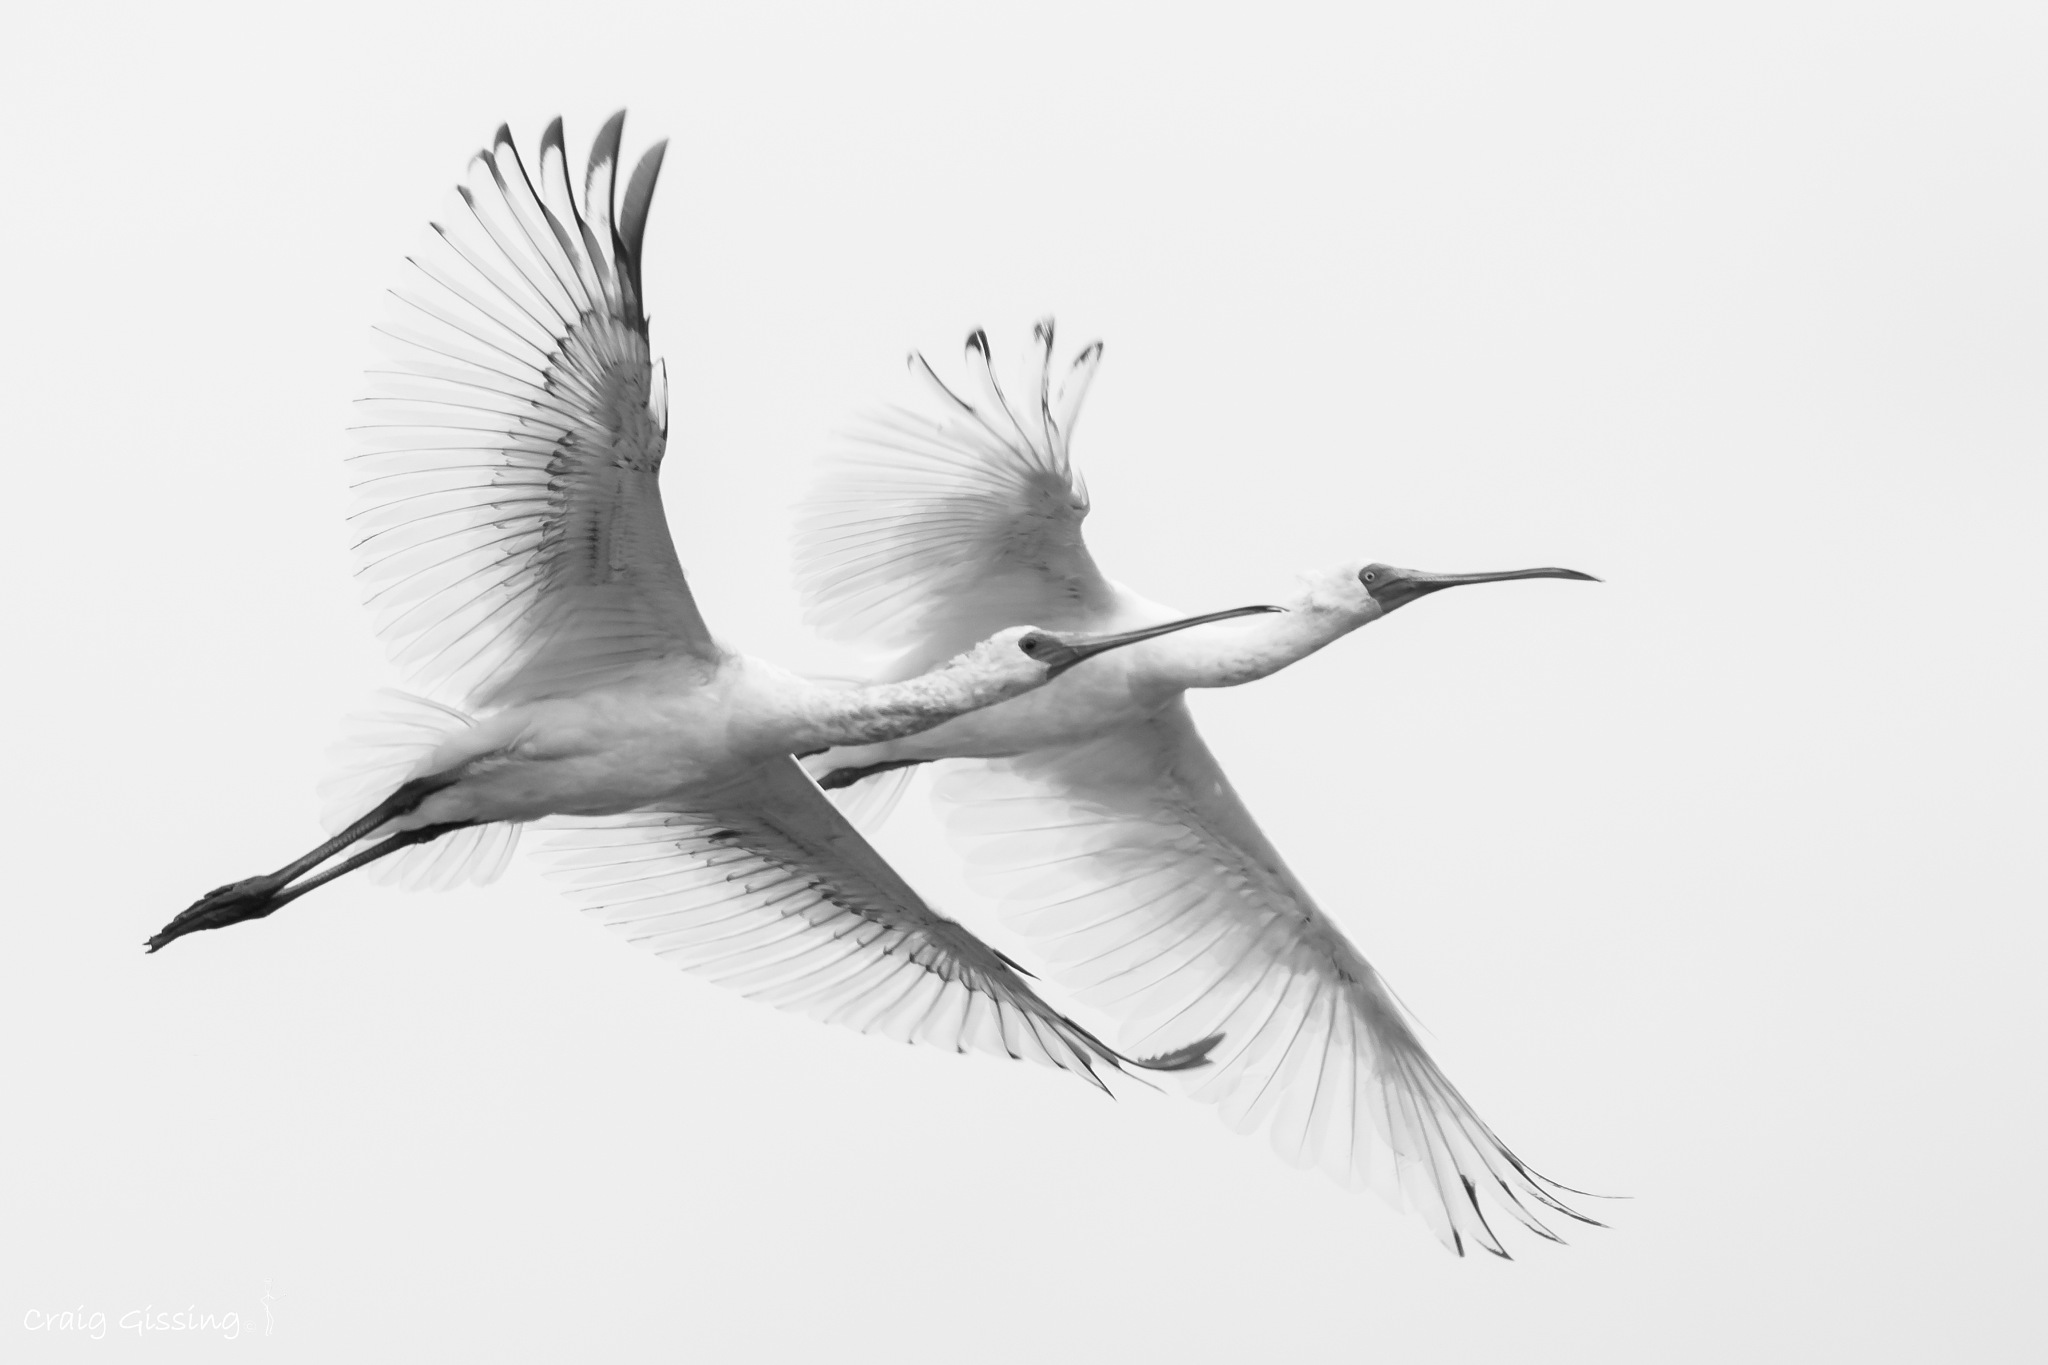 African Spoonbill in flight by craig.gissing